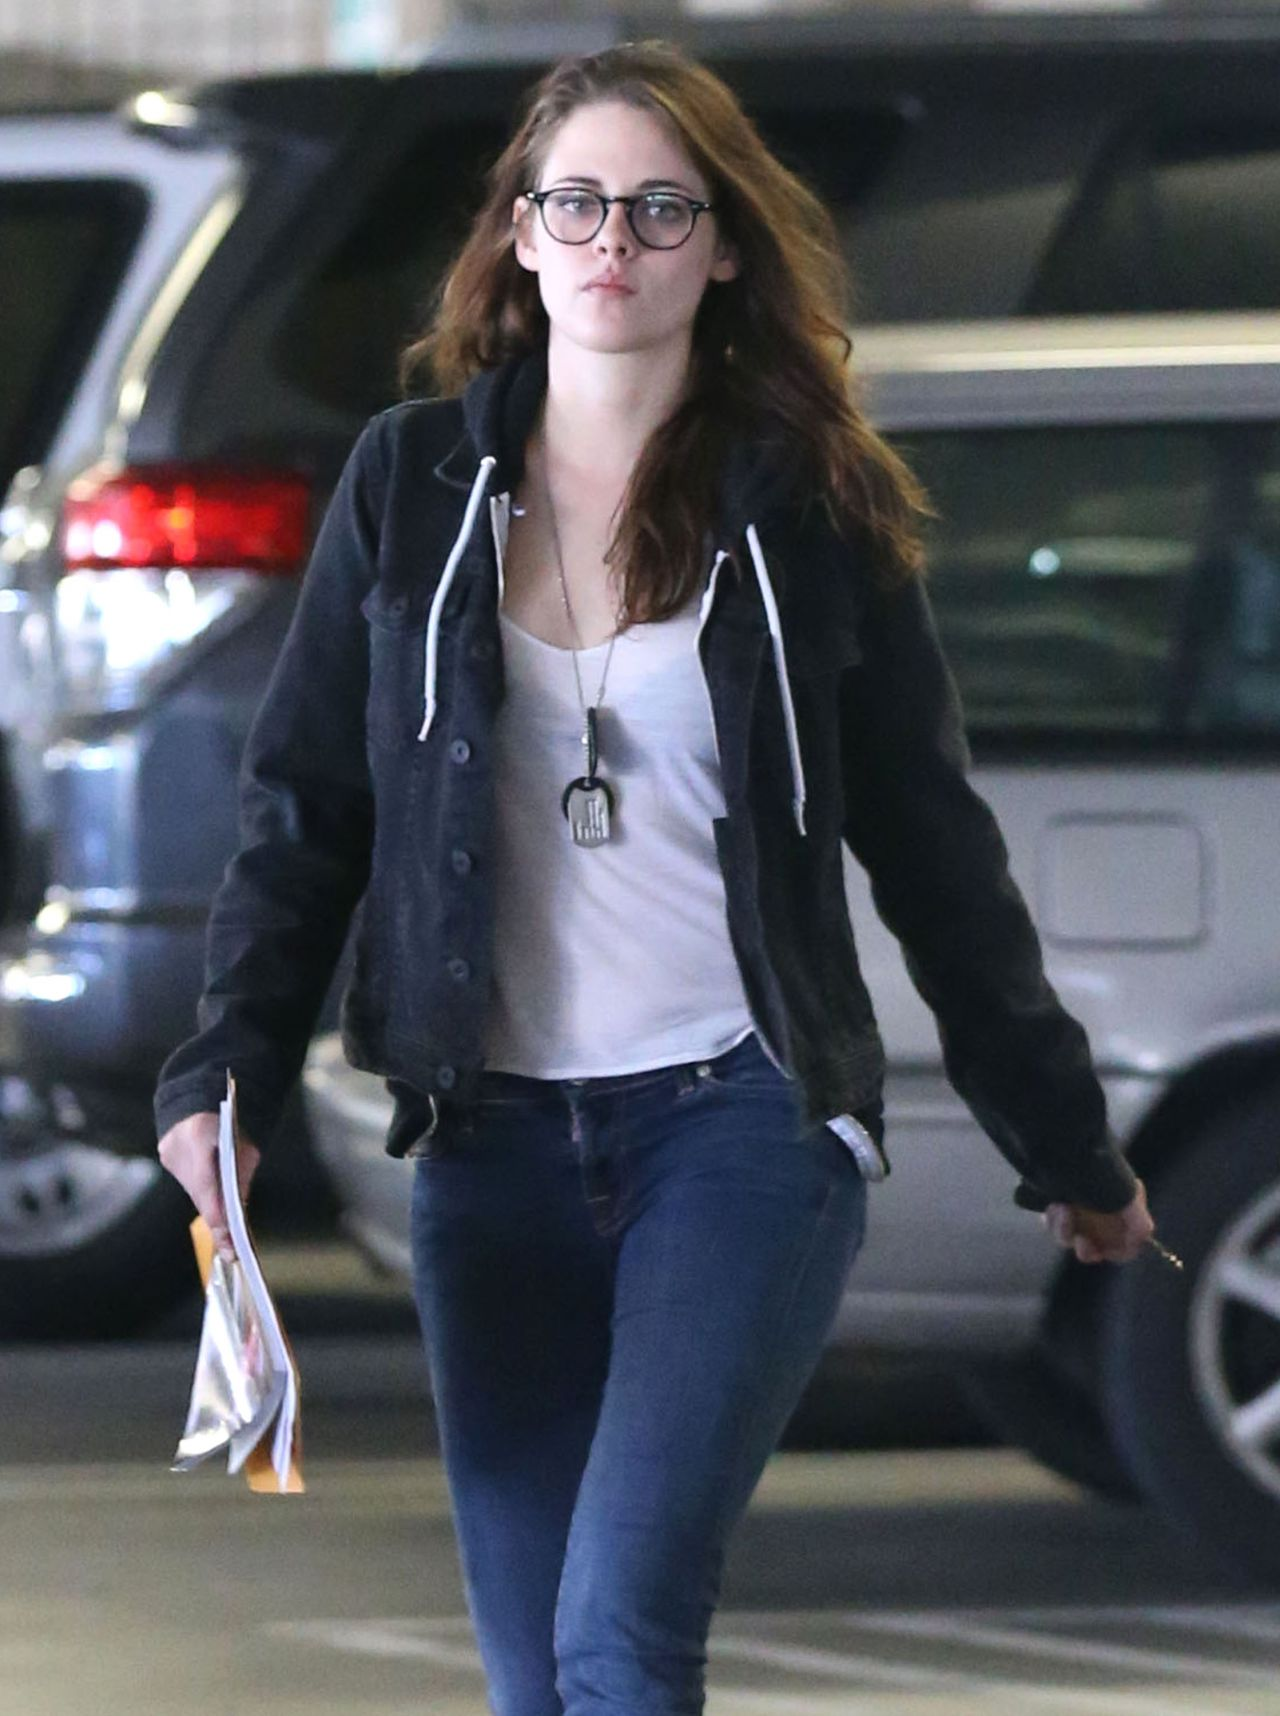 Kristen Stewart in Jeans - Out in Los Angeles - January 2014